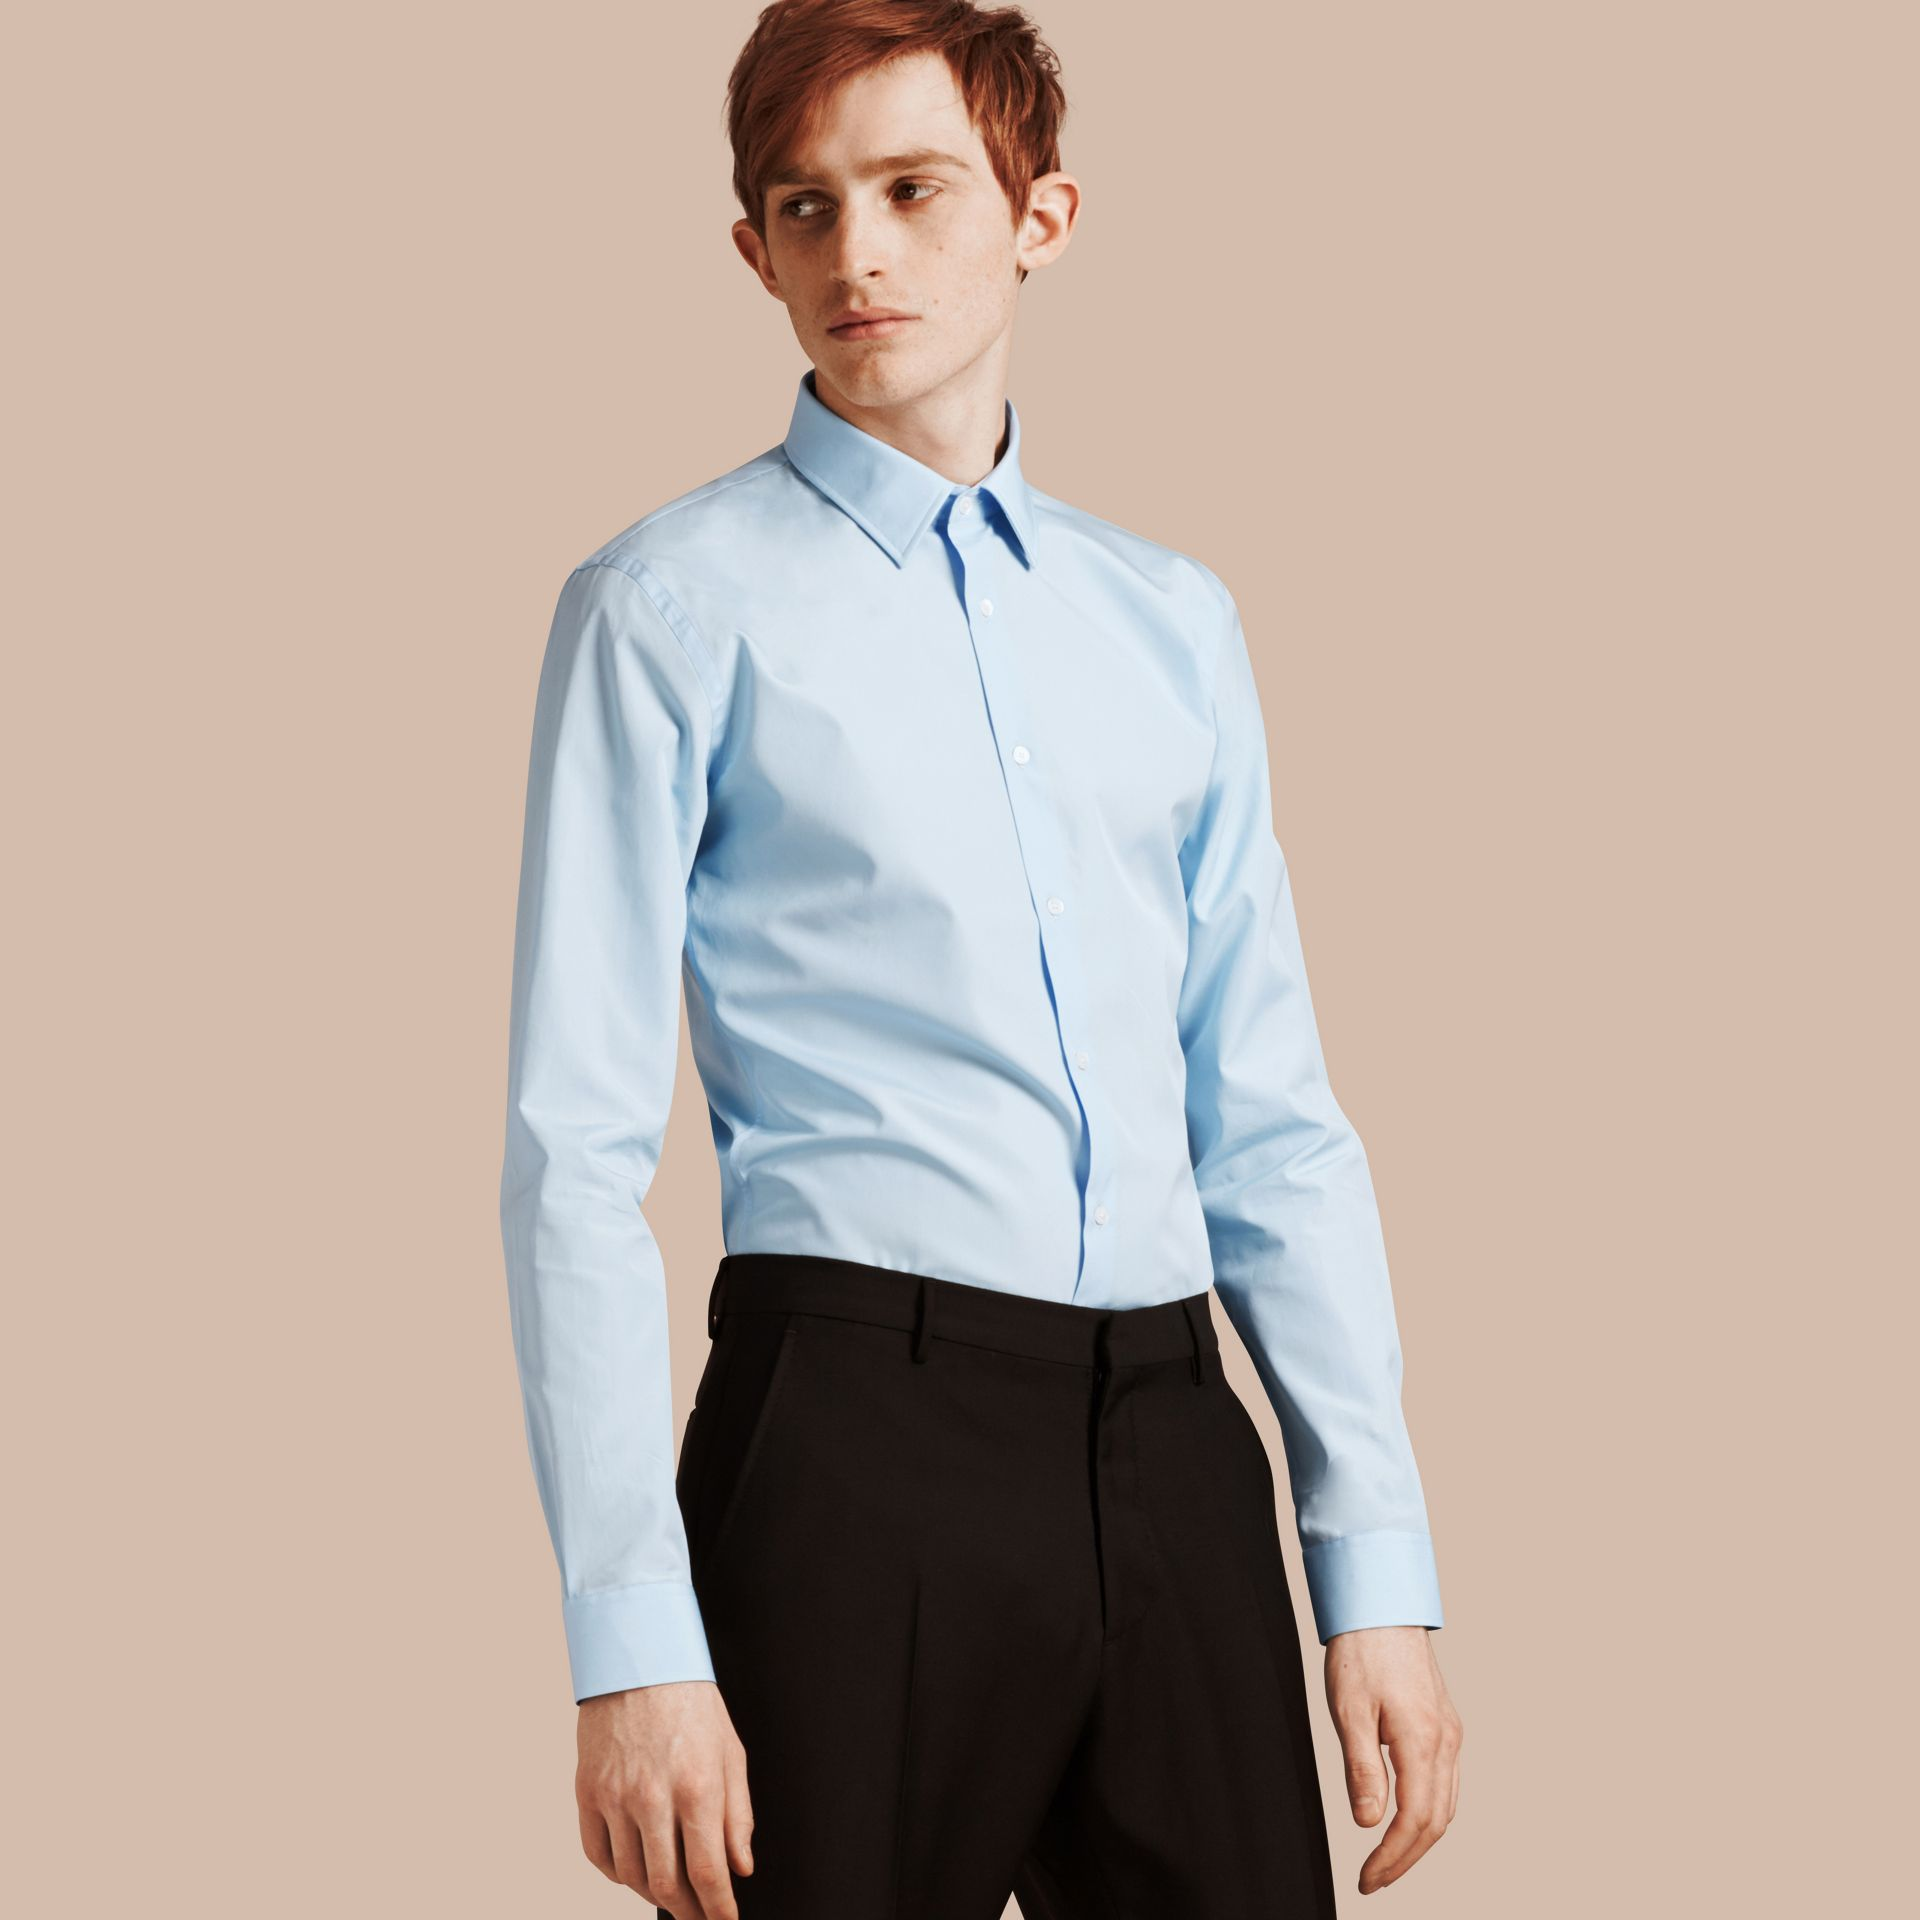 Slim Fit Cotton Poplin Shirt in City Blue - Men | Burberry Singapore - gallery image 1